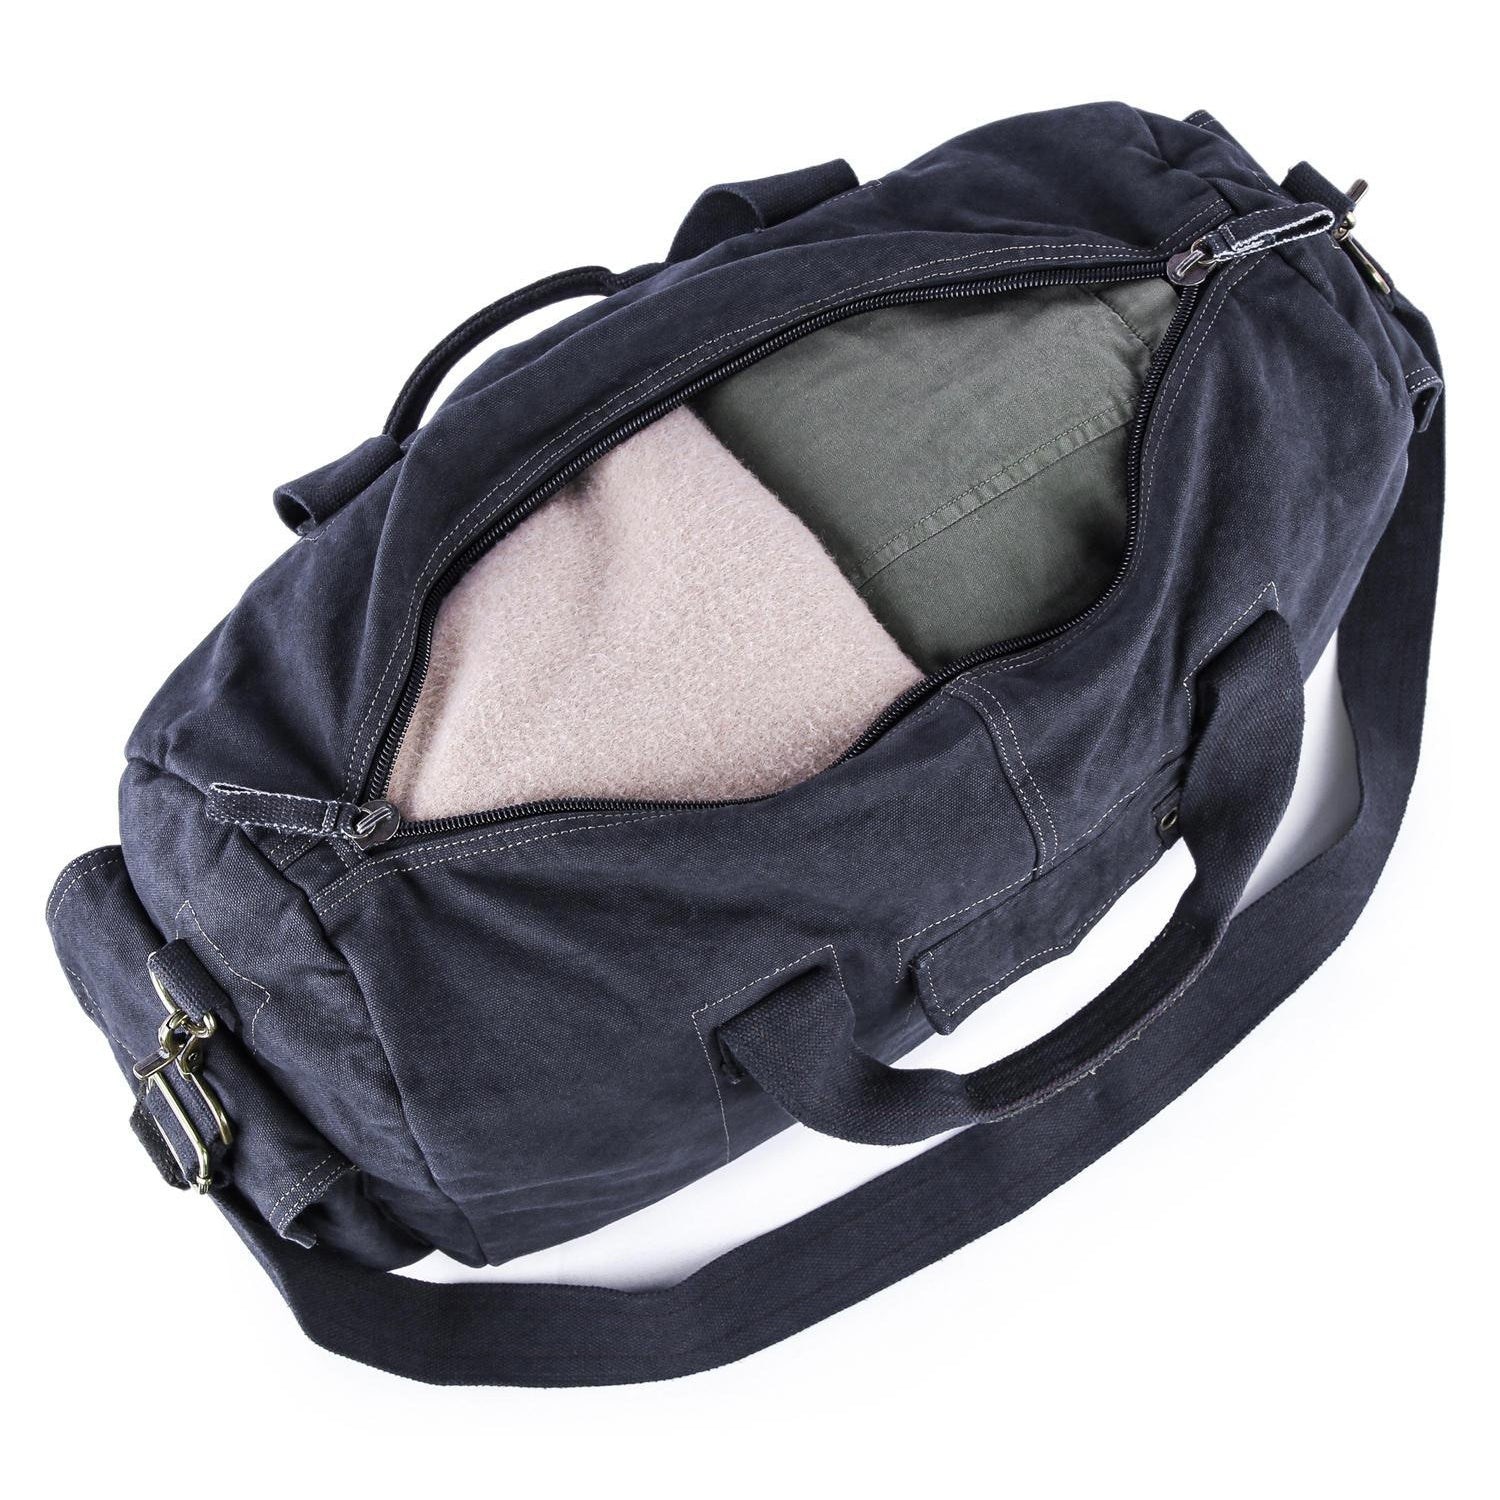 Gootium Canvas Duffel Bag  60404 c5f0a77162a59